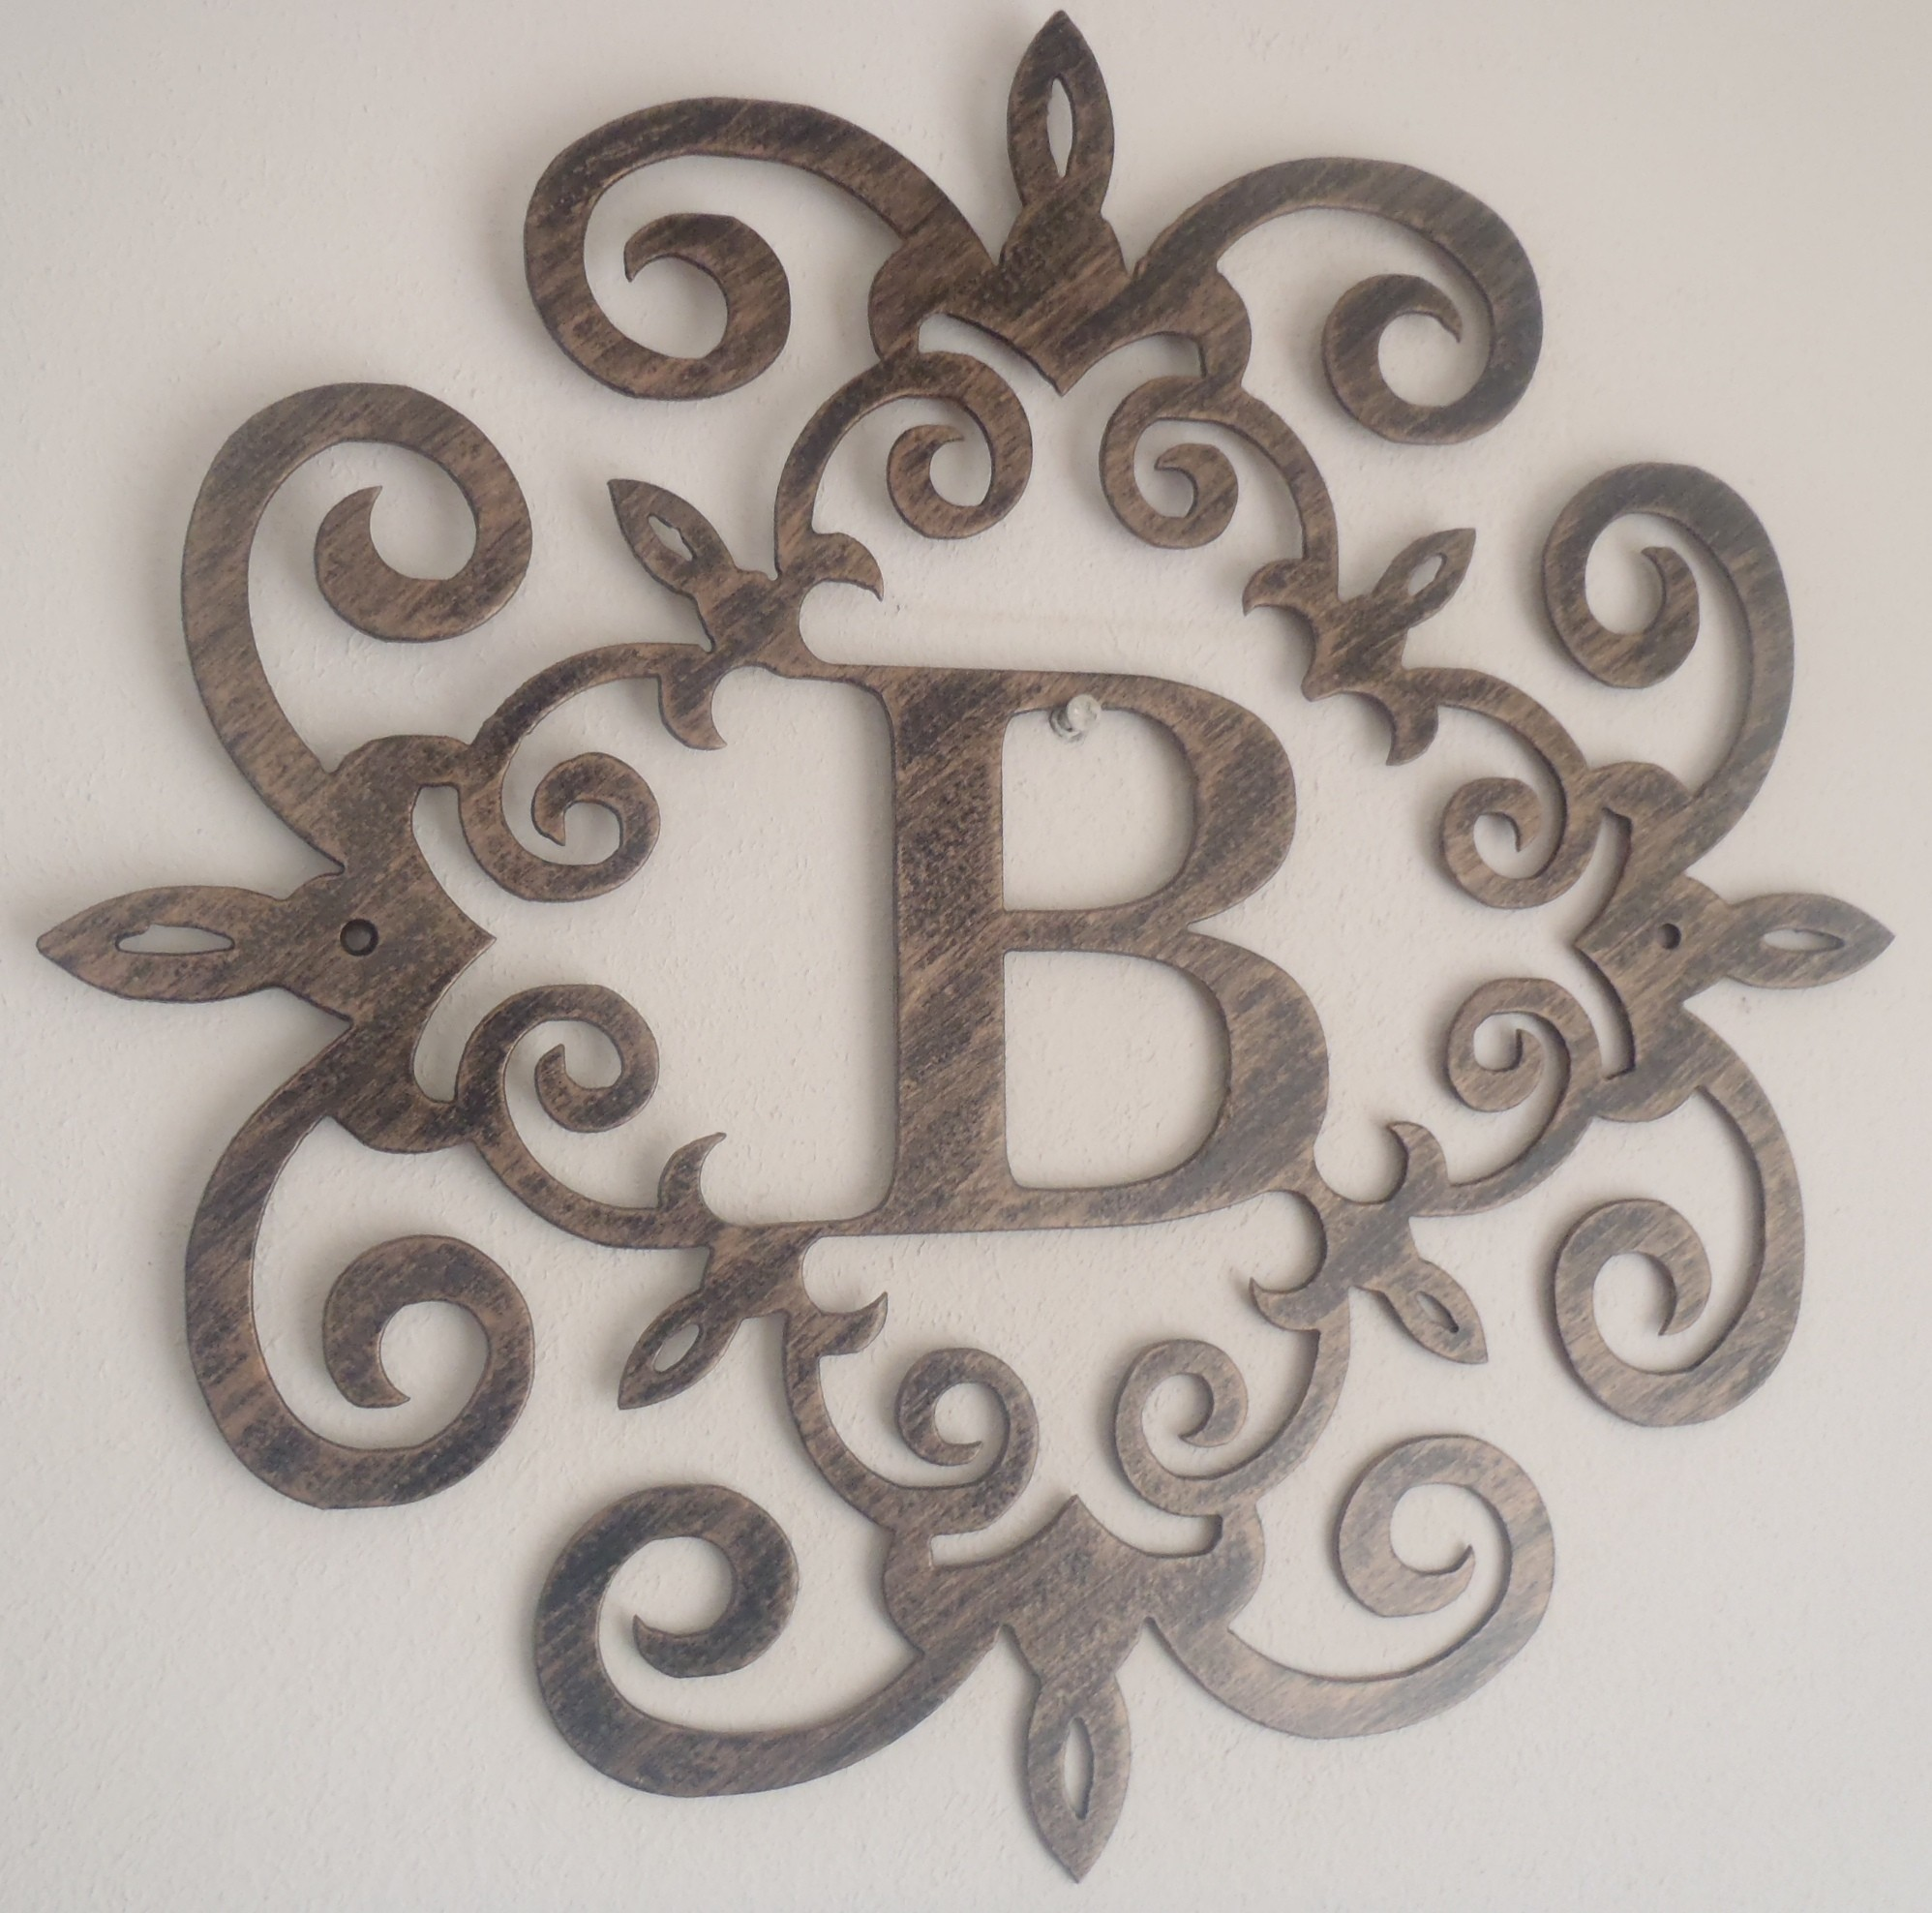 Picture of: B Large Letters For Wall Decor